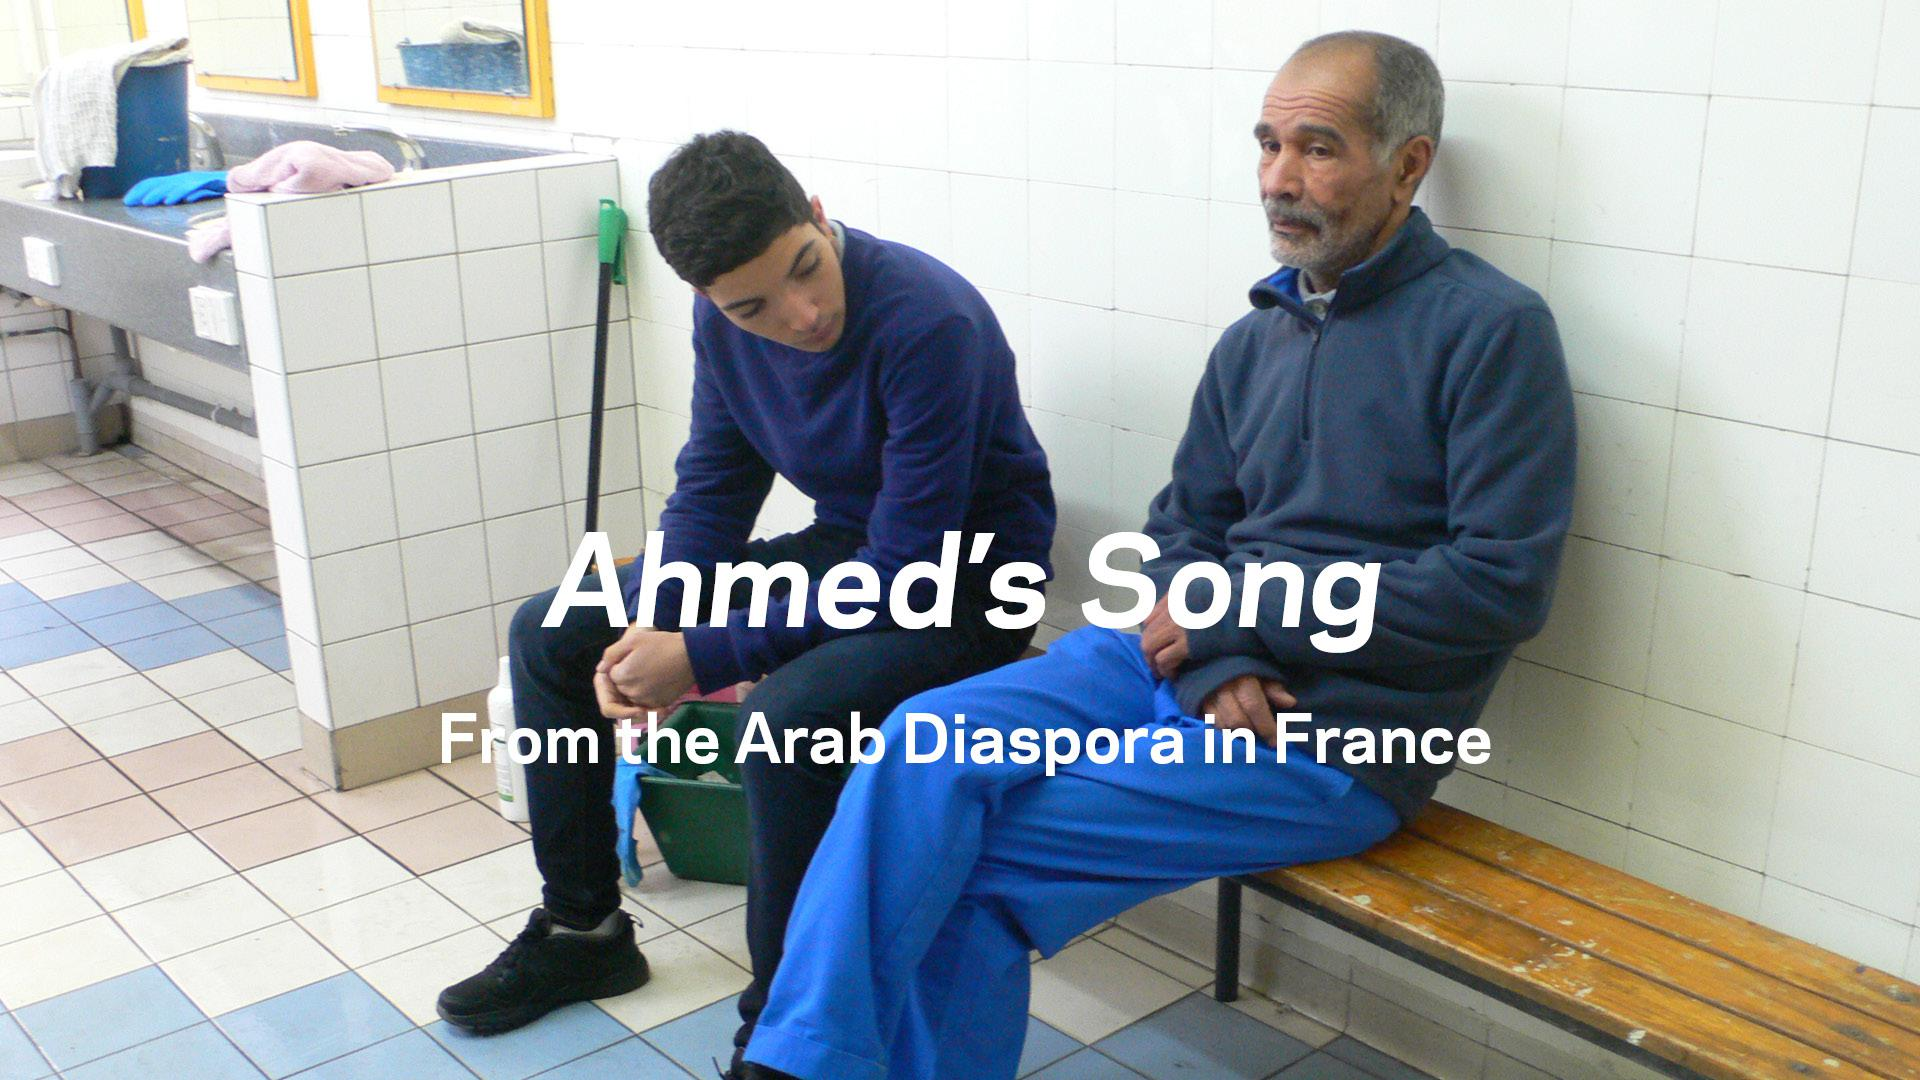 Ahmed's song